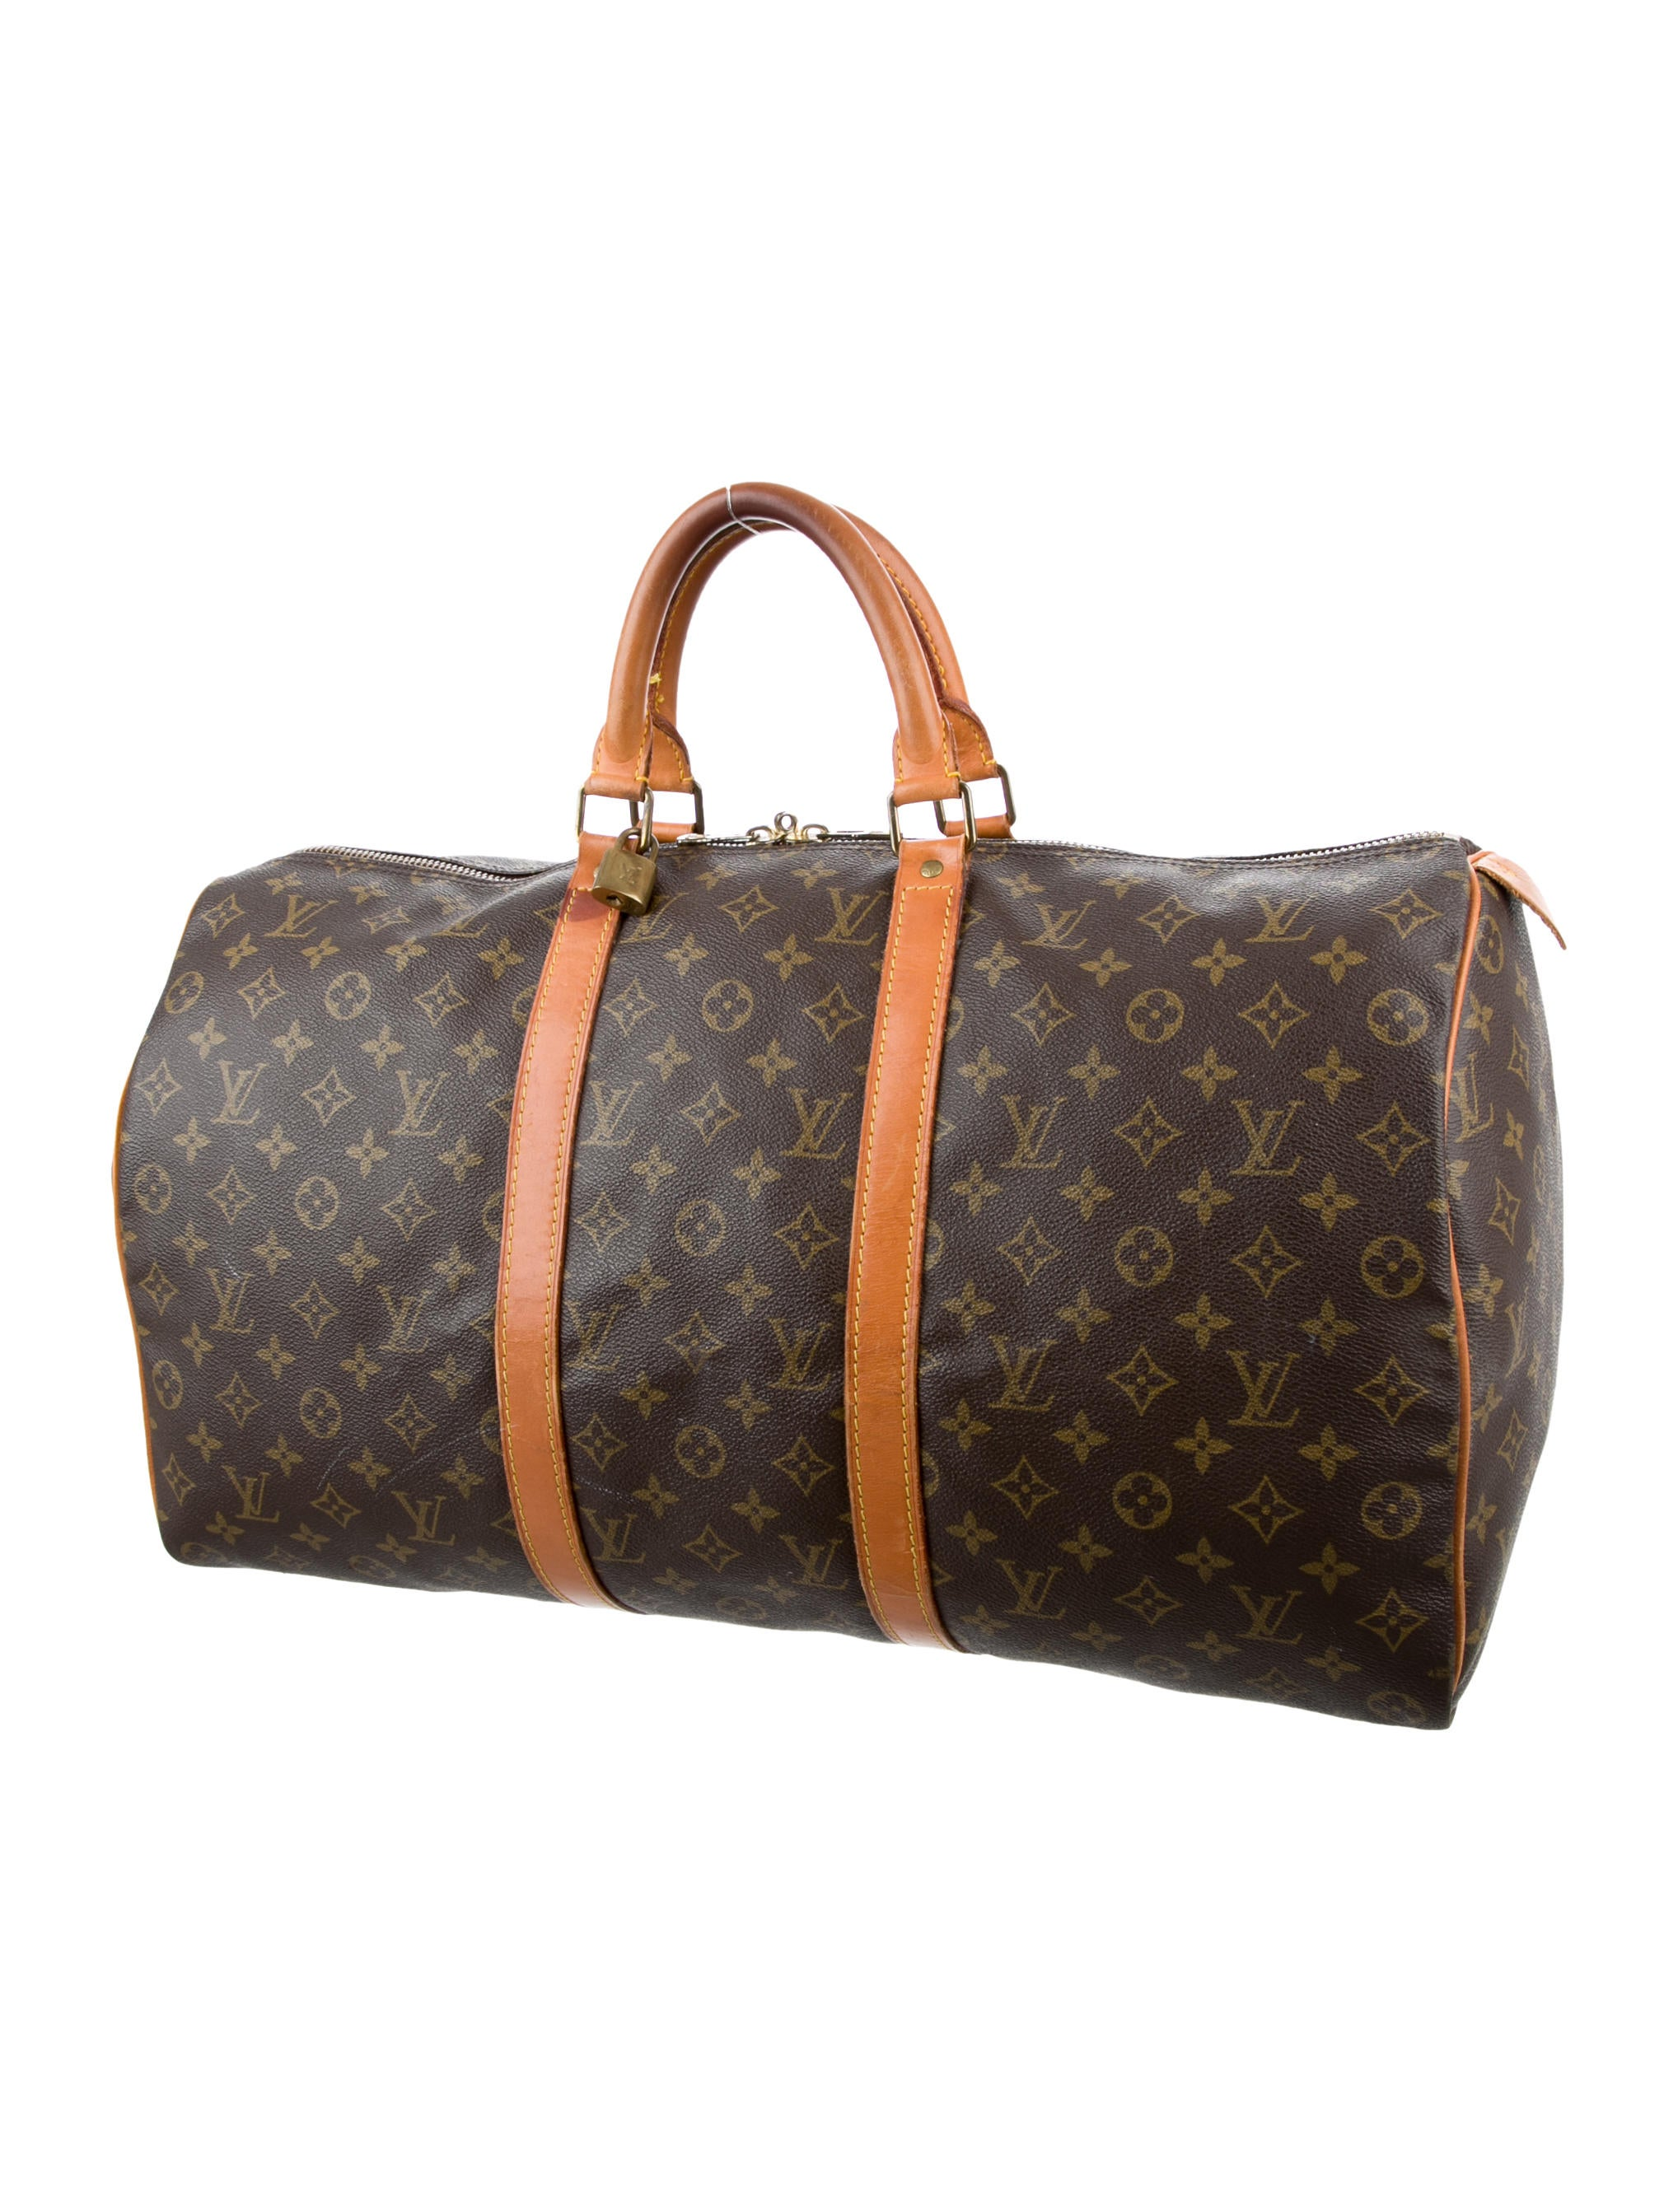 louis vuitton monogram keepall 50 handbags lou117200 the realreal. Black Bedroom Furniture Sets. Home Design Ideas